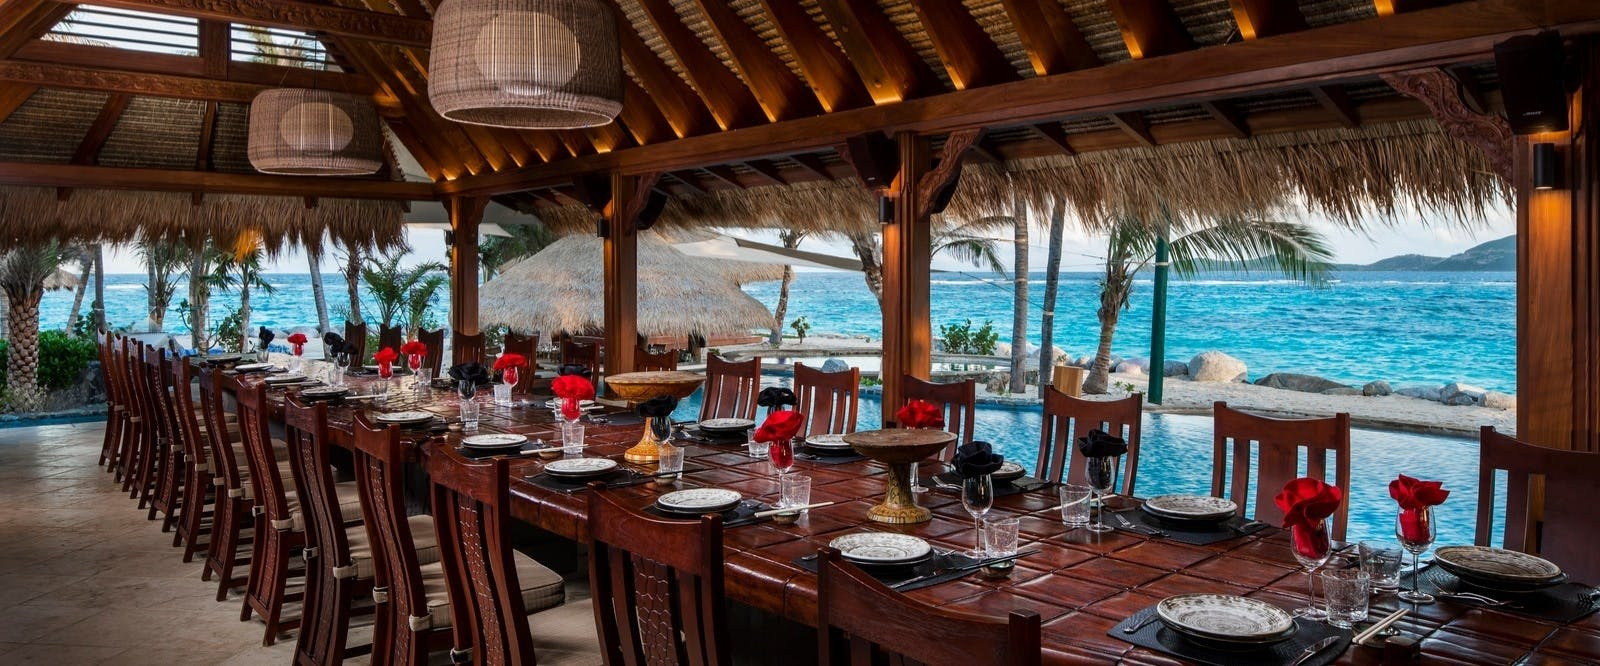 Crocodile Pavilion Dining at Necker Island, British Virgin Islands